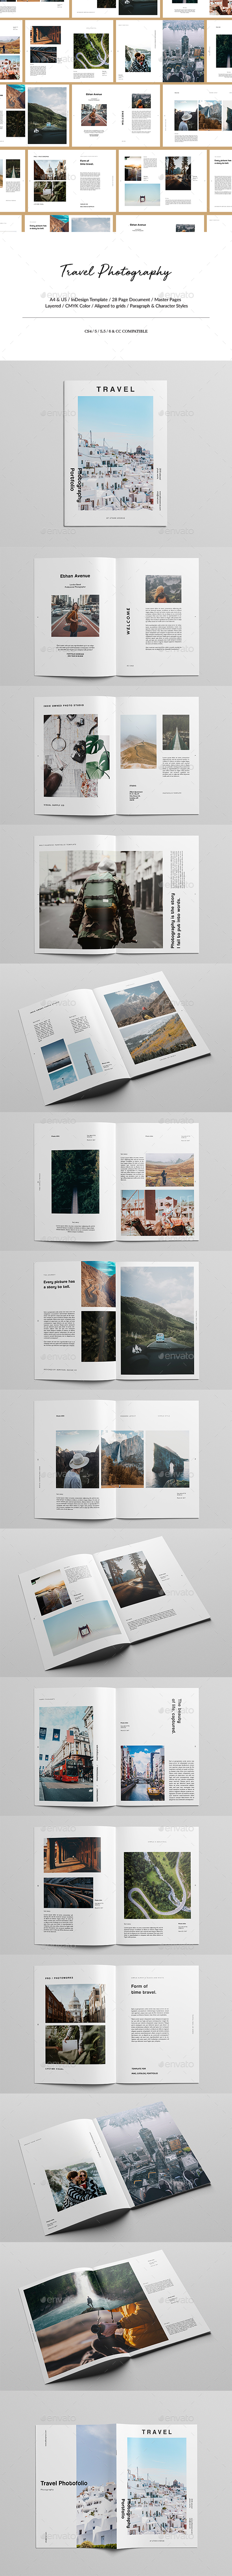 Travel Photography Portfolio - Portfolio Brochures